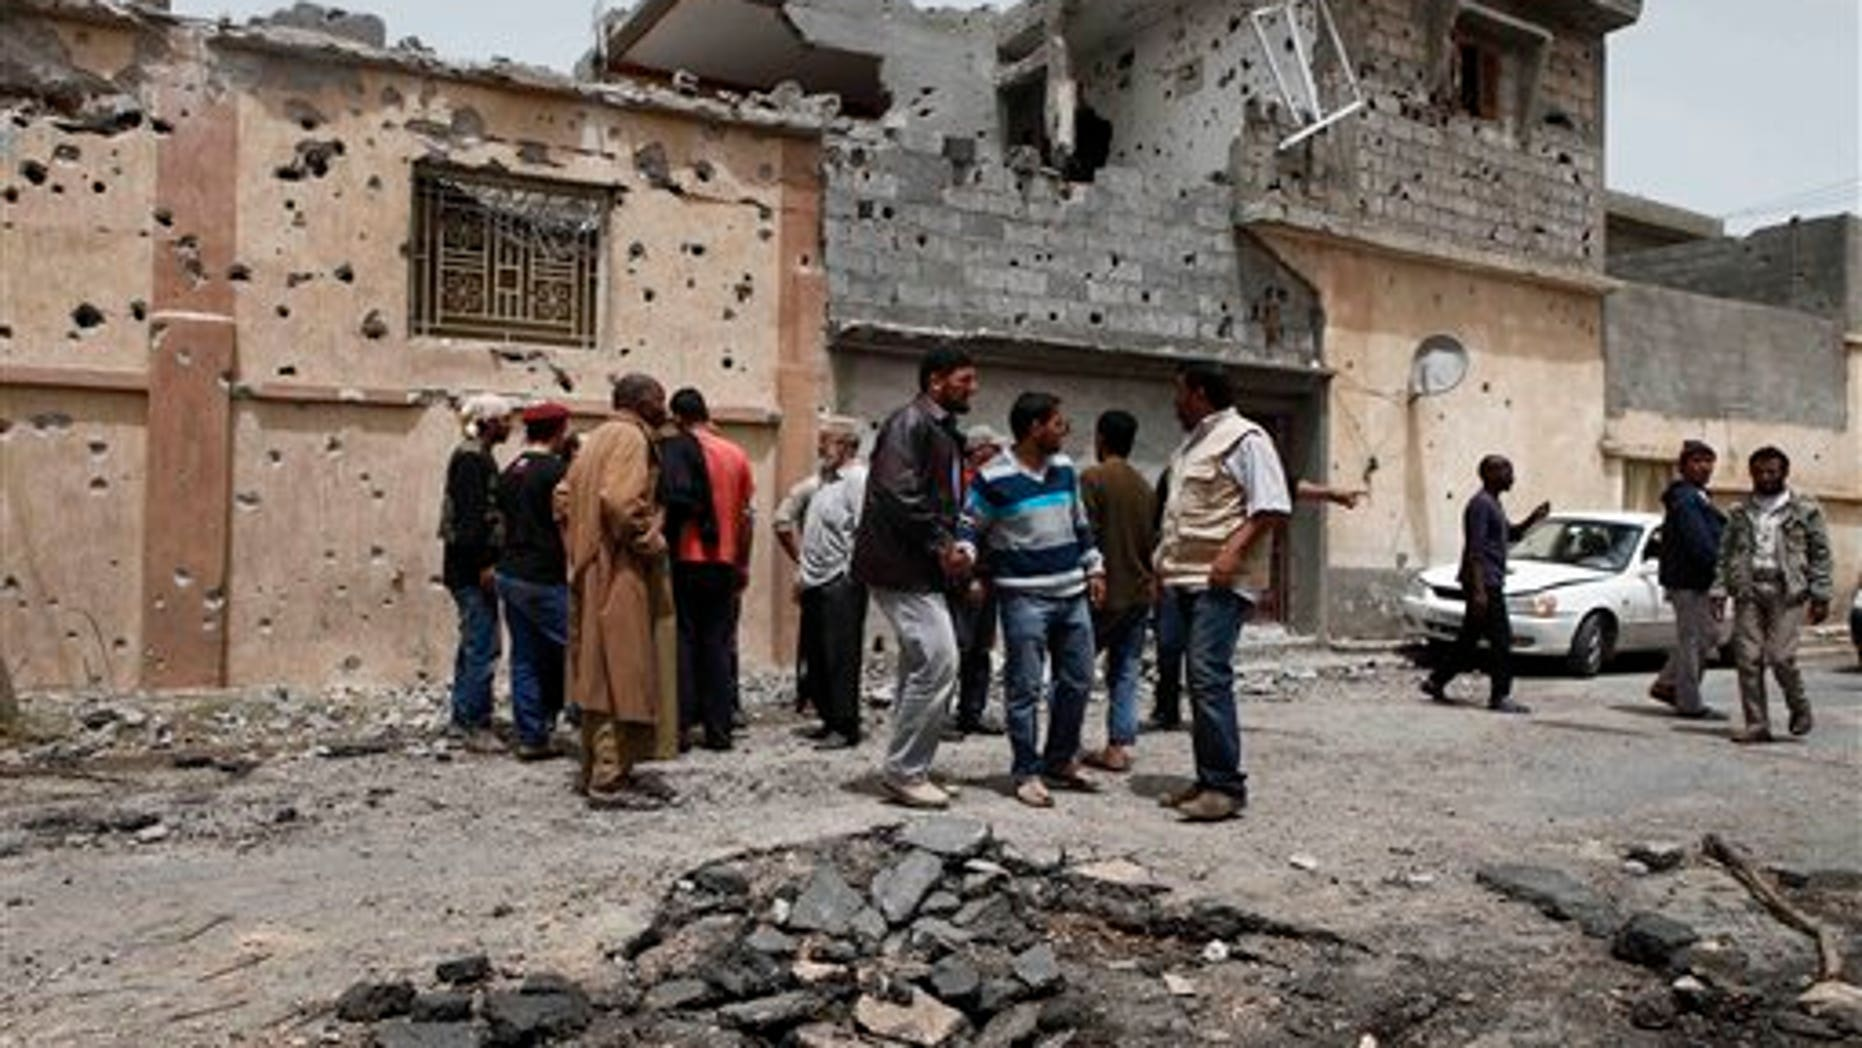 April 25: Neighbors examine the damage to a house which was struck by a shell in Misrata. Qaddafi's troops on the outskirts of Misrata unleashed more shells into the city Monday, hitting a residential area and killing 10 people, including five members of one family, according to a doctor in Misrata. (AP)